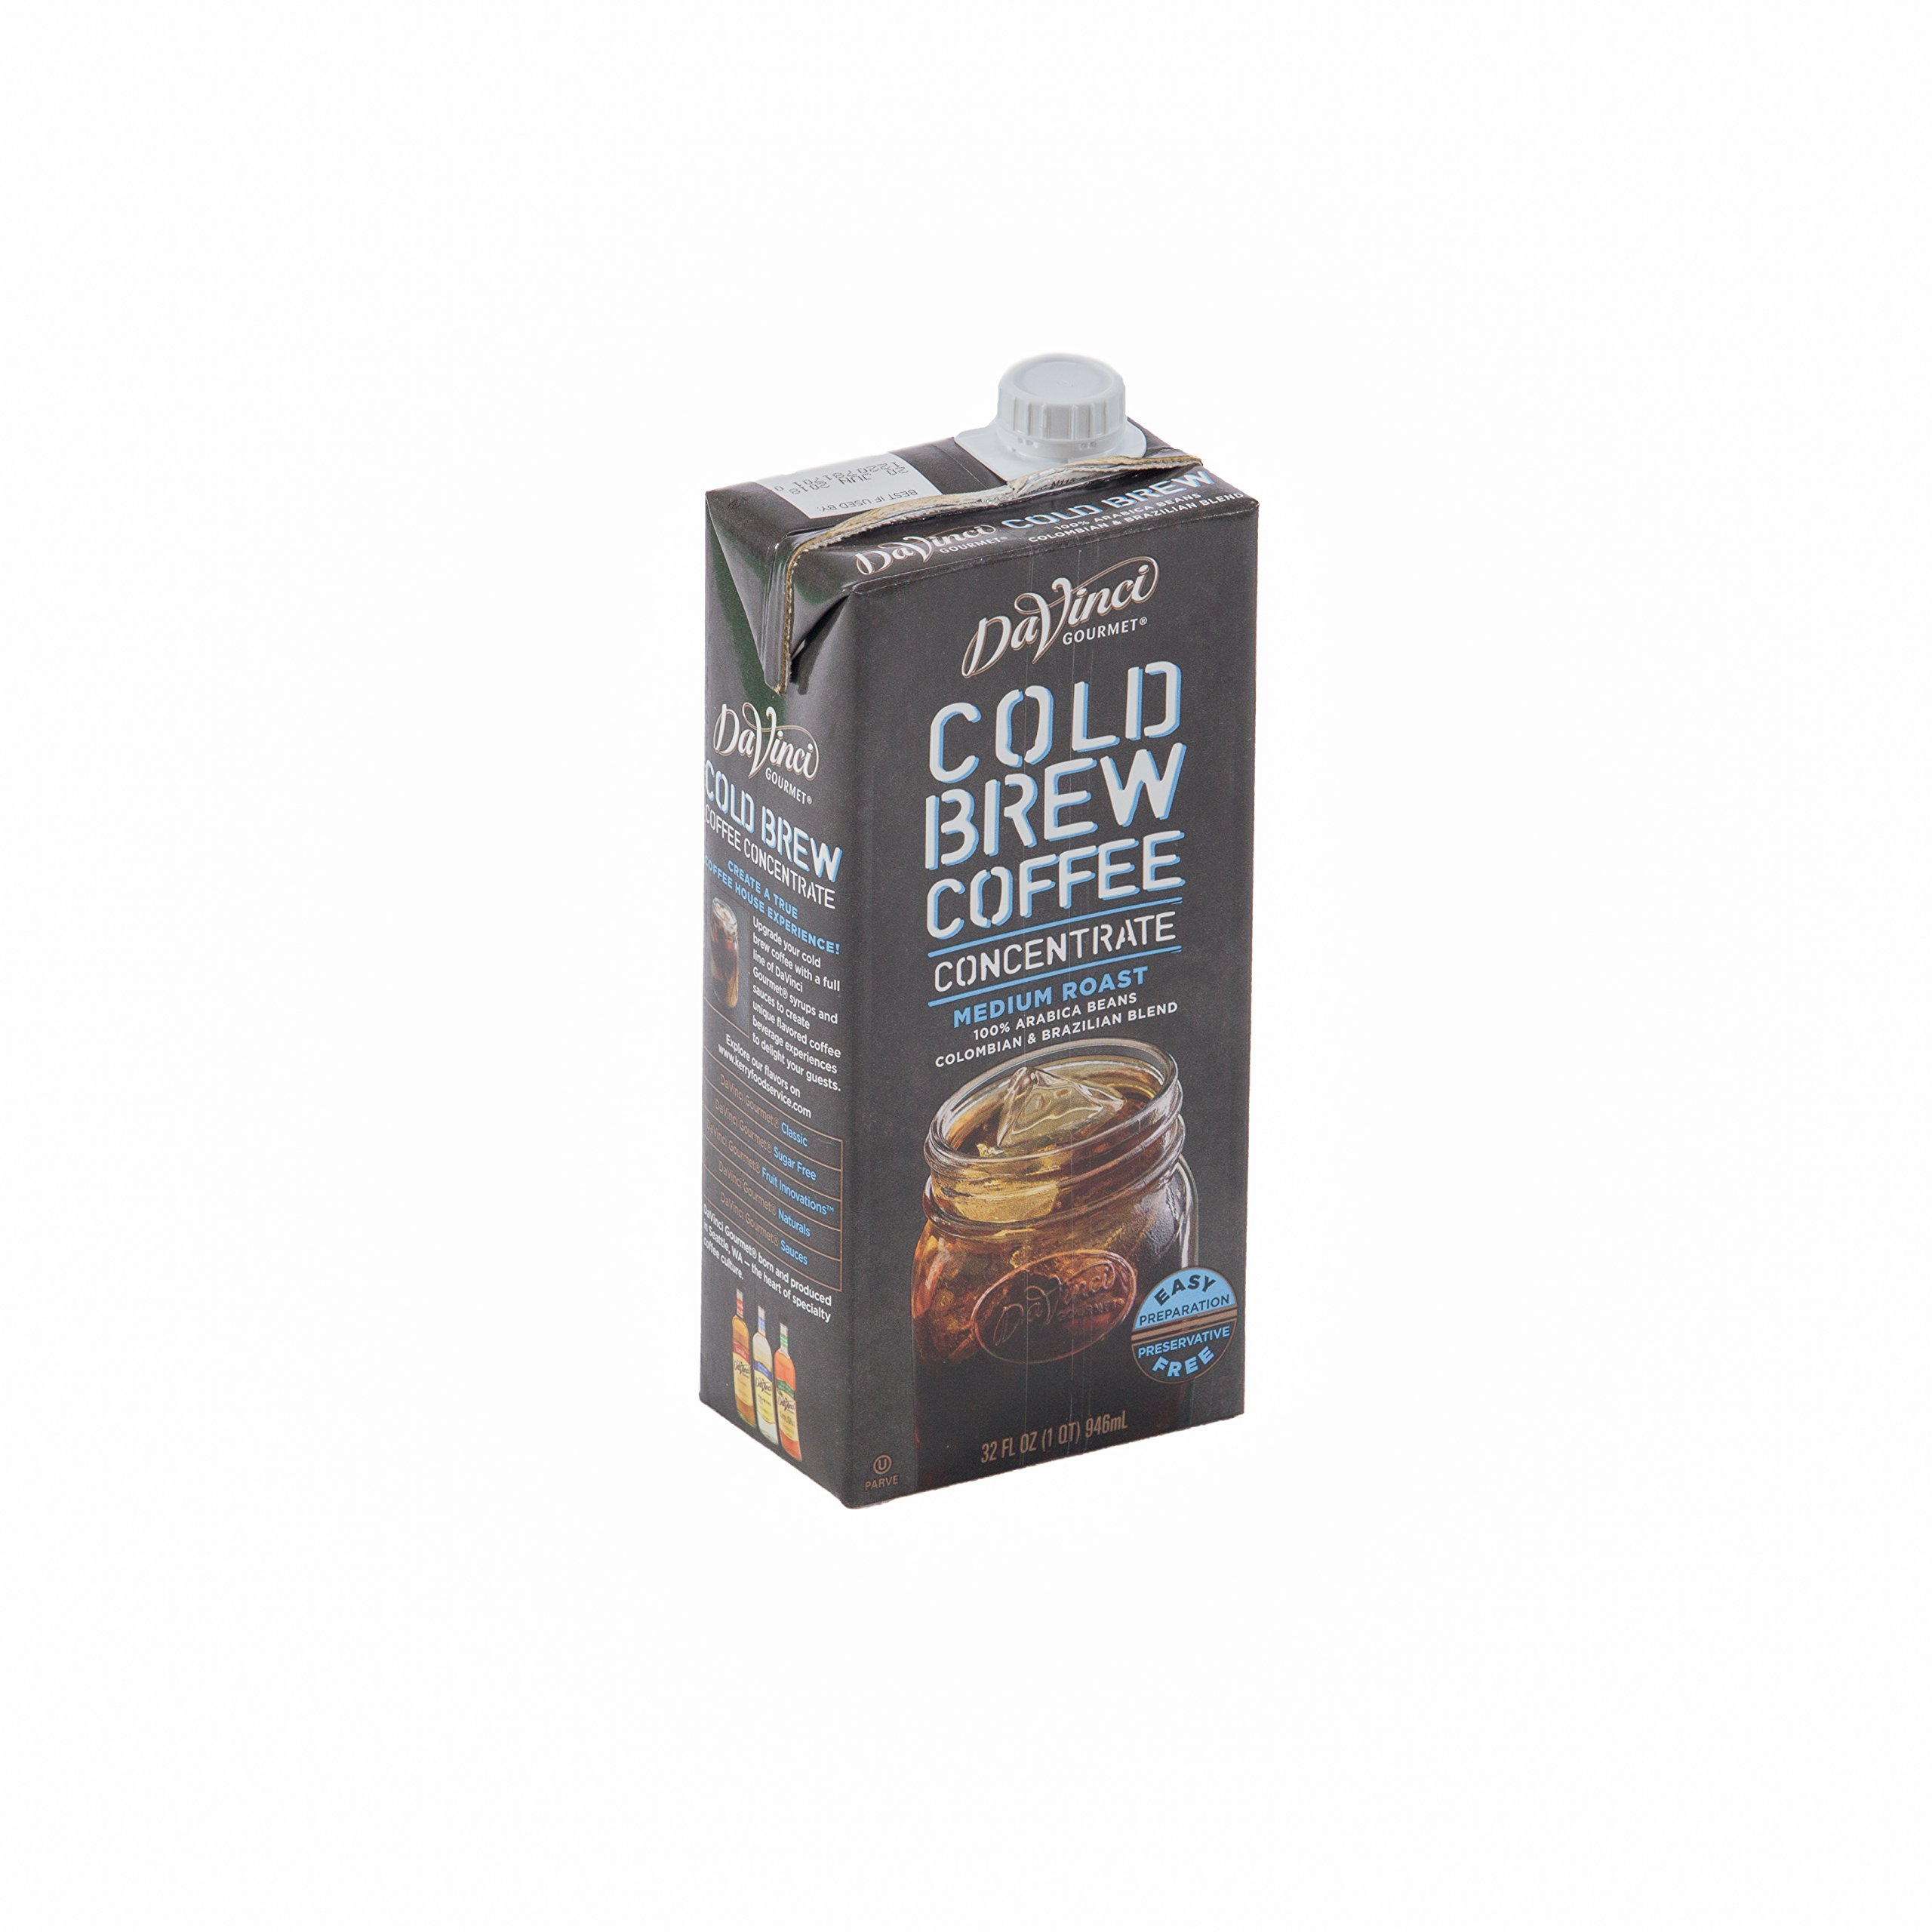 DaVinci Gourmet Cold Brew Coffee Concentrate 32 oz, Pack of 6